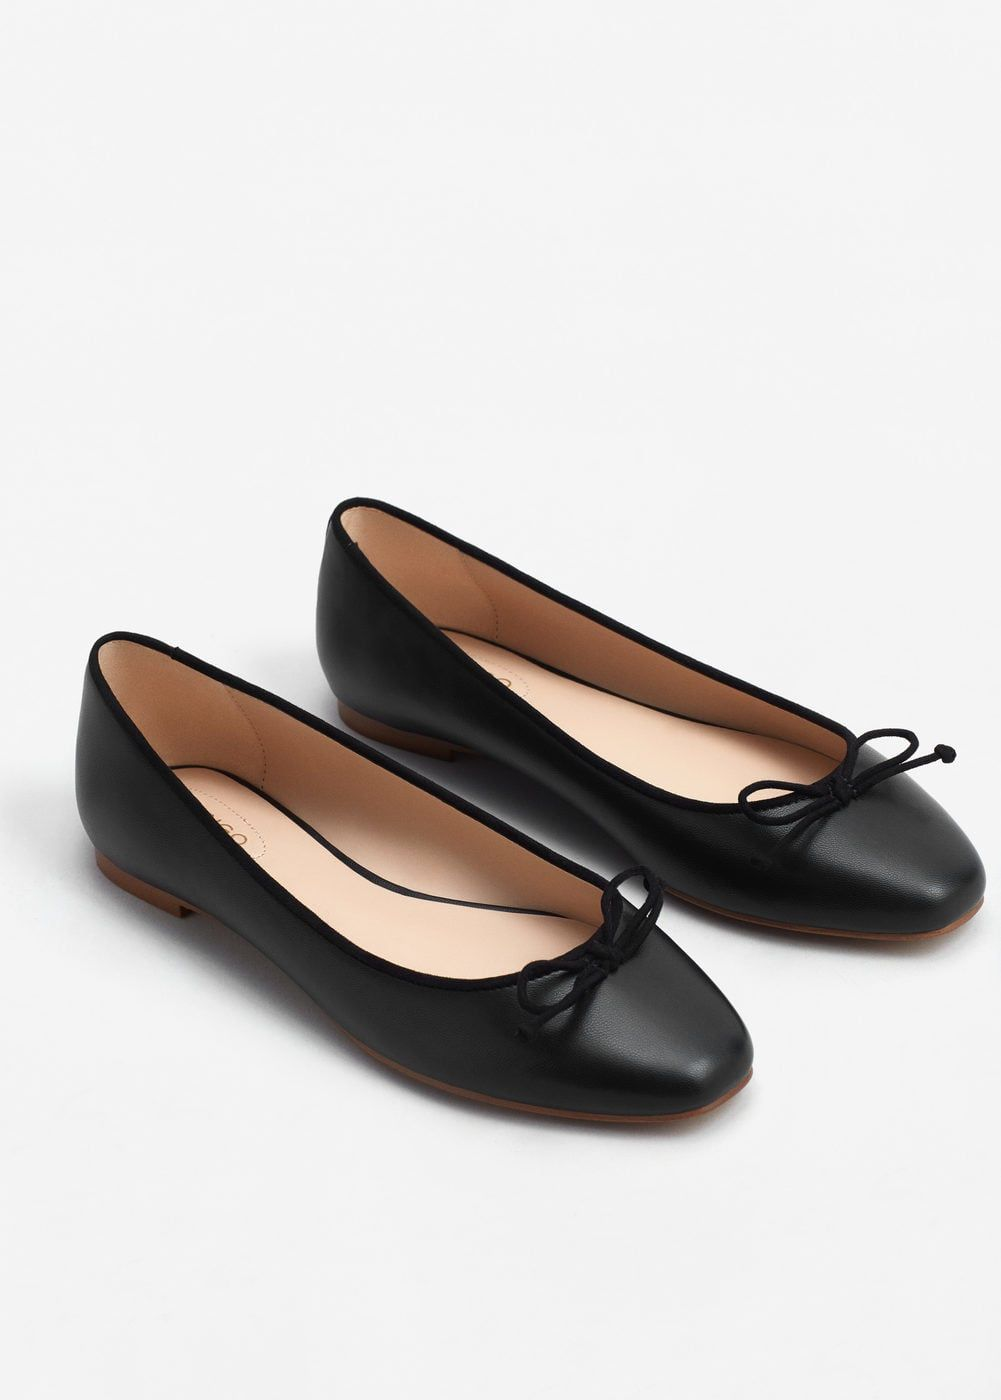 New Women/'s Smart Black Flat Loafers with PomPoms Classic Shoes Slip On